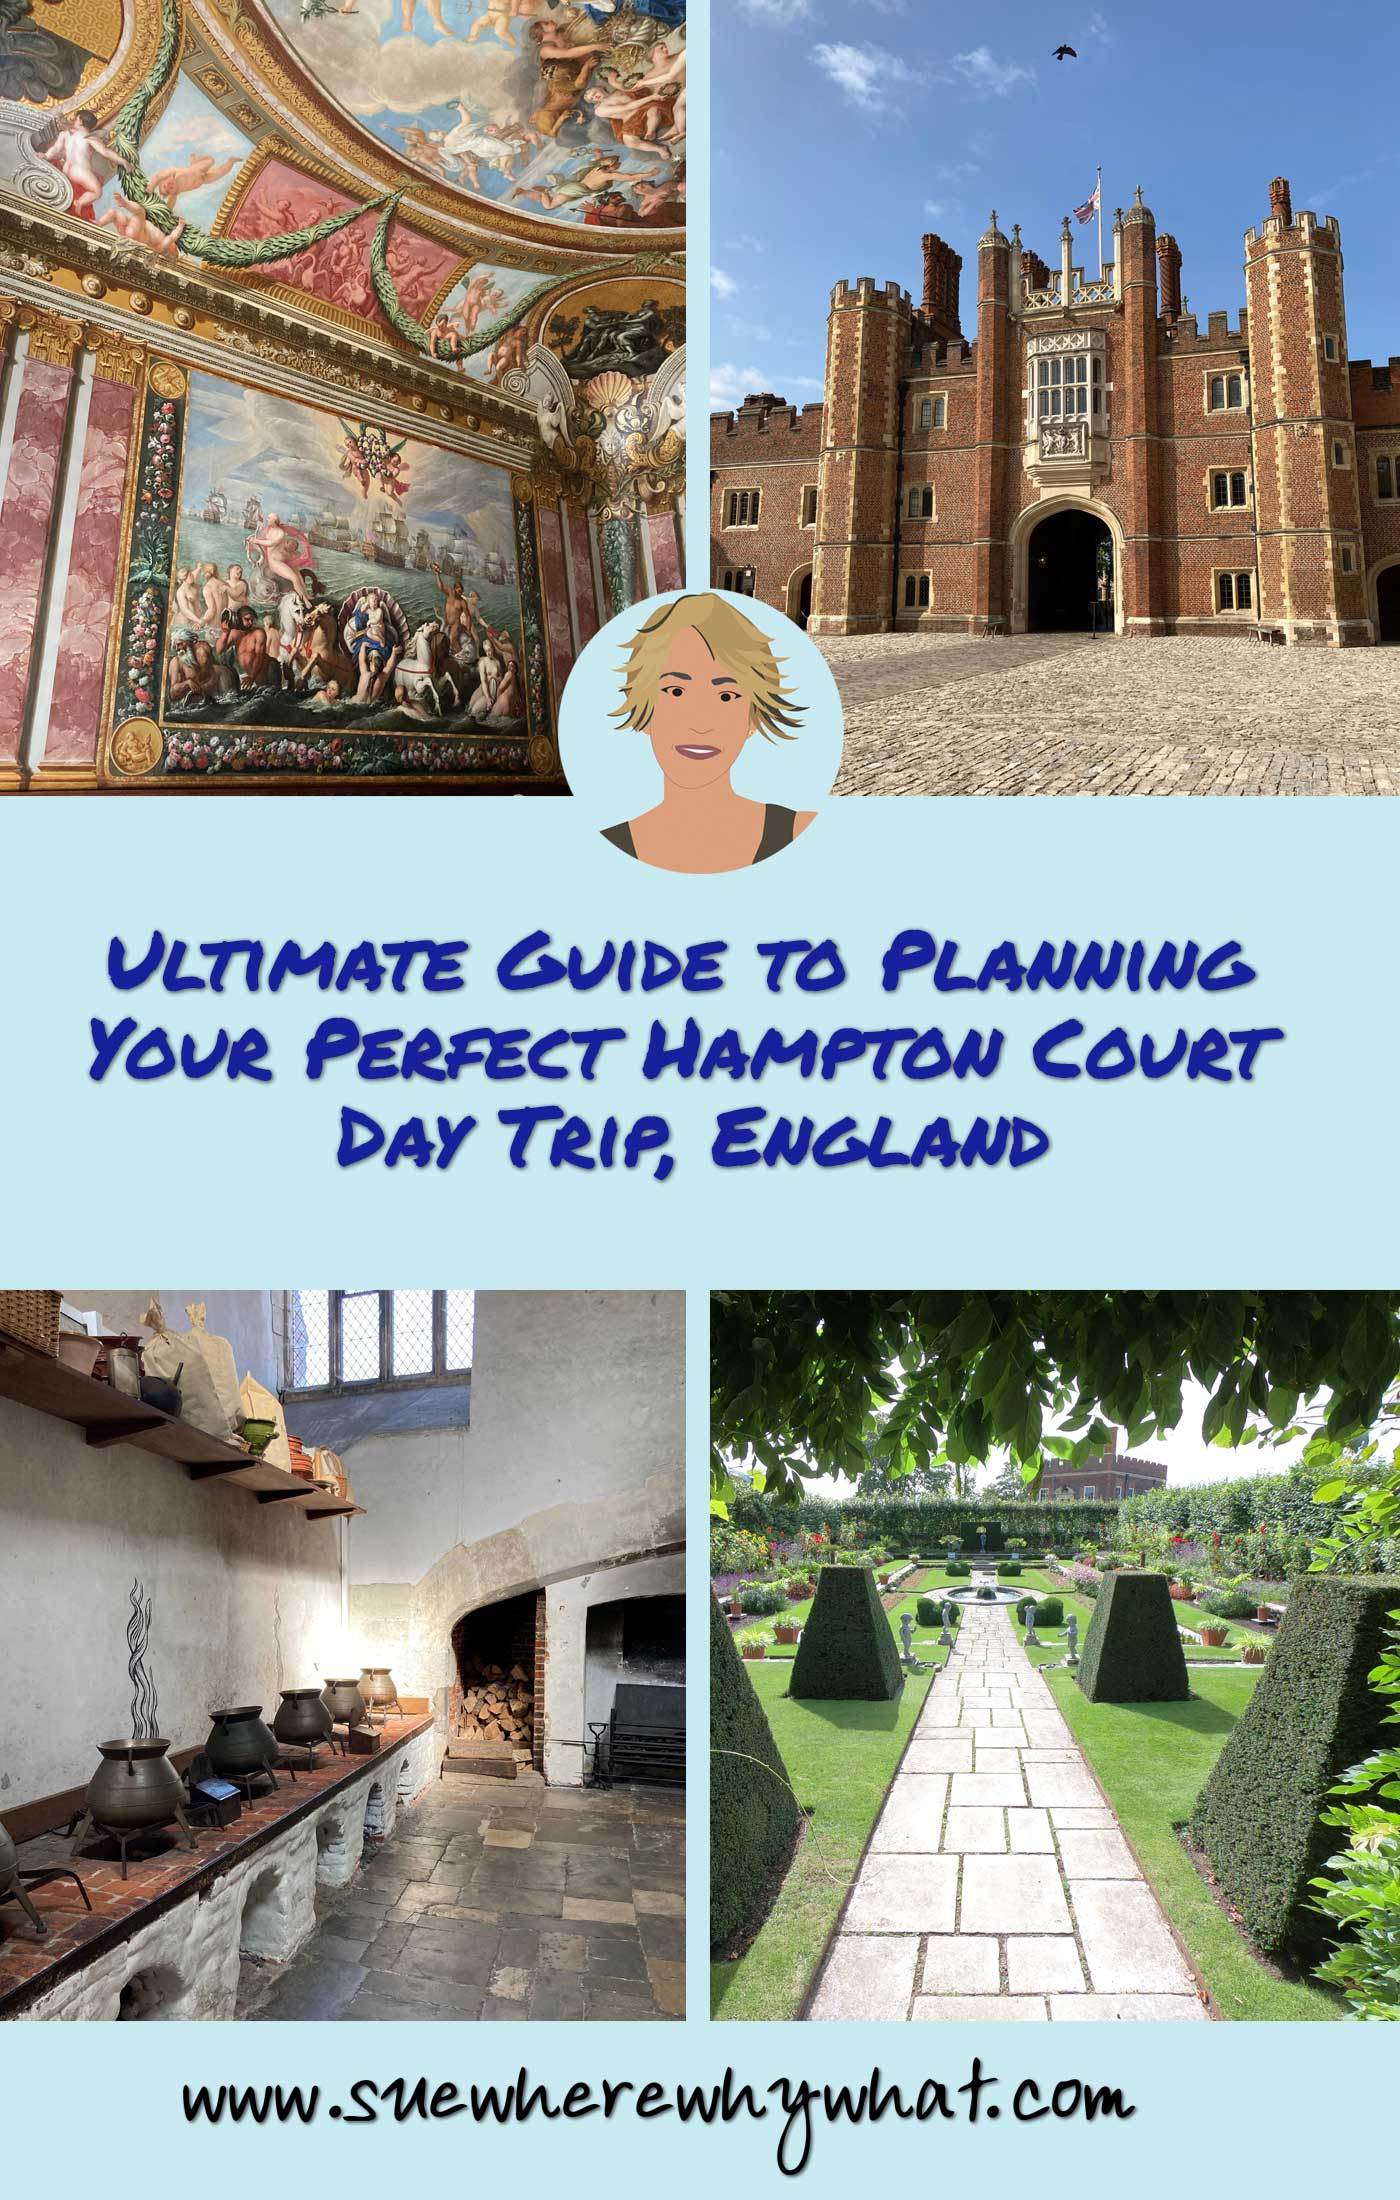 Ultimate Guide to Planning Your Perfect Hampton Court Day Trip